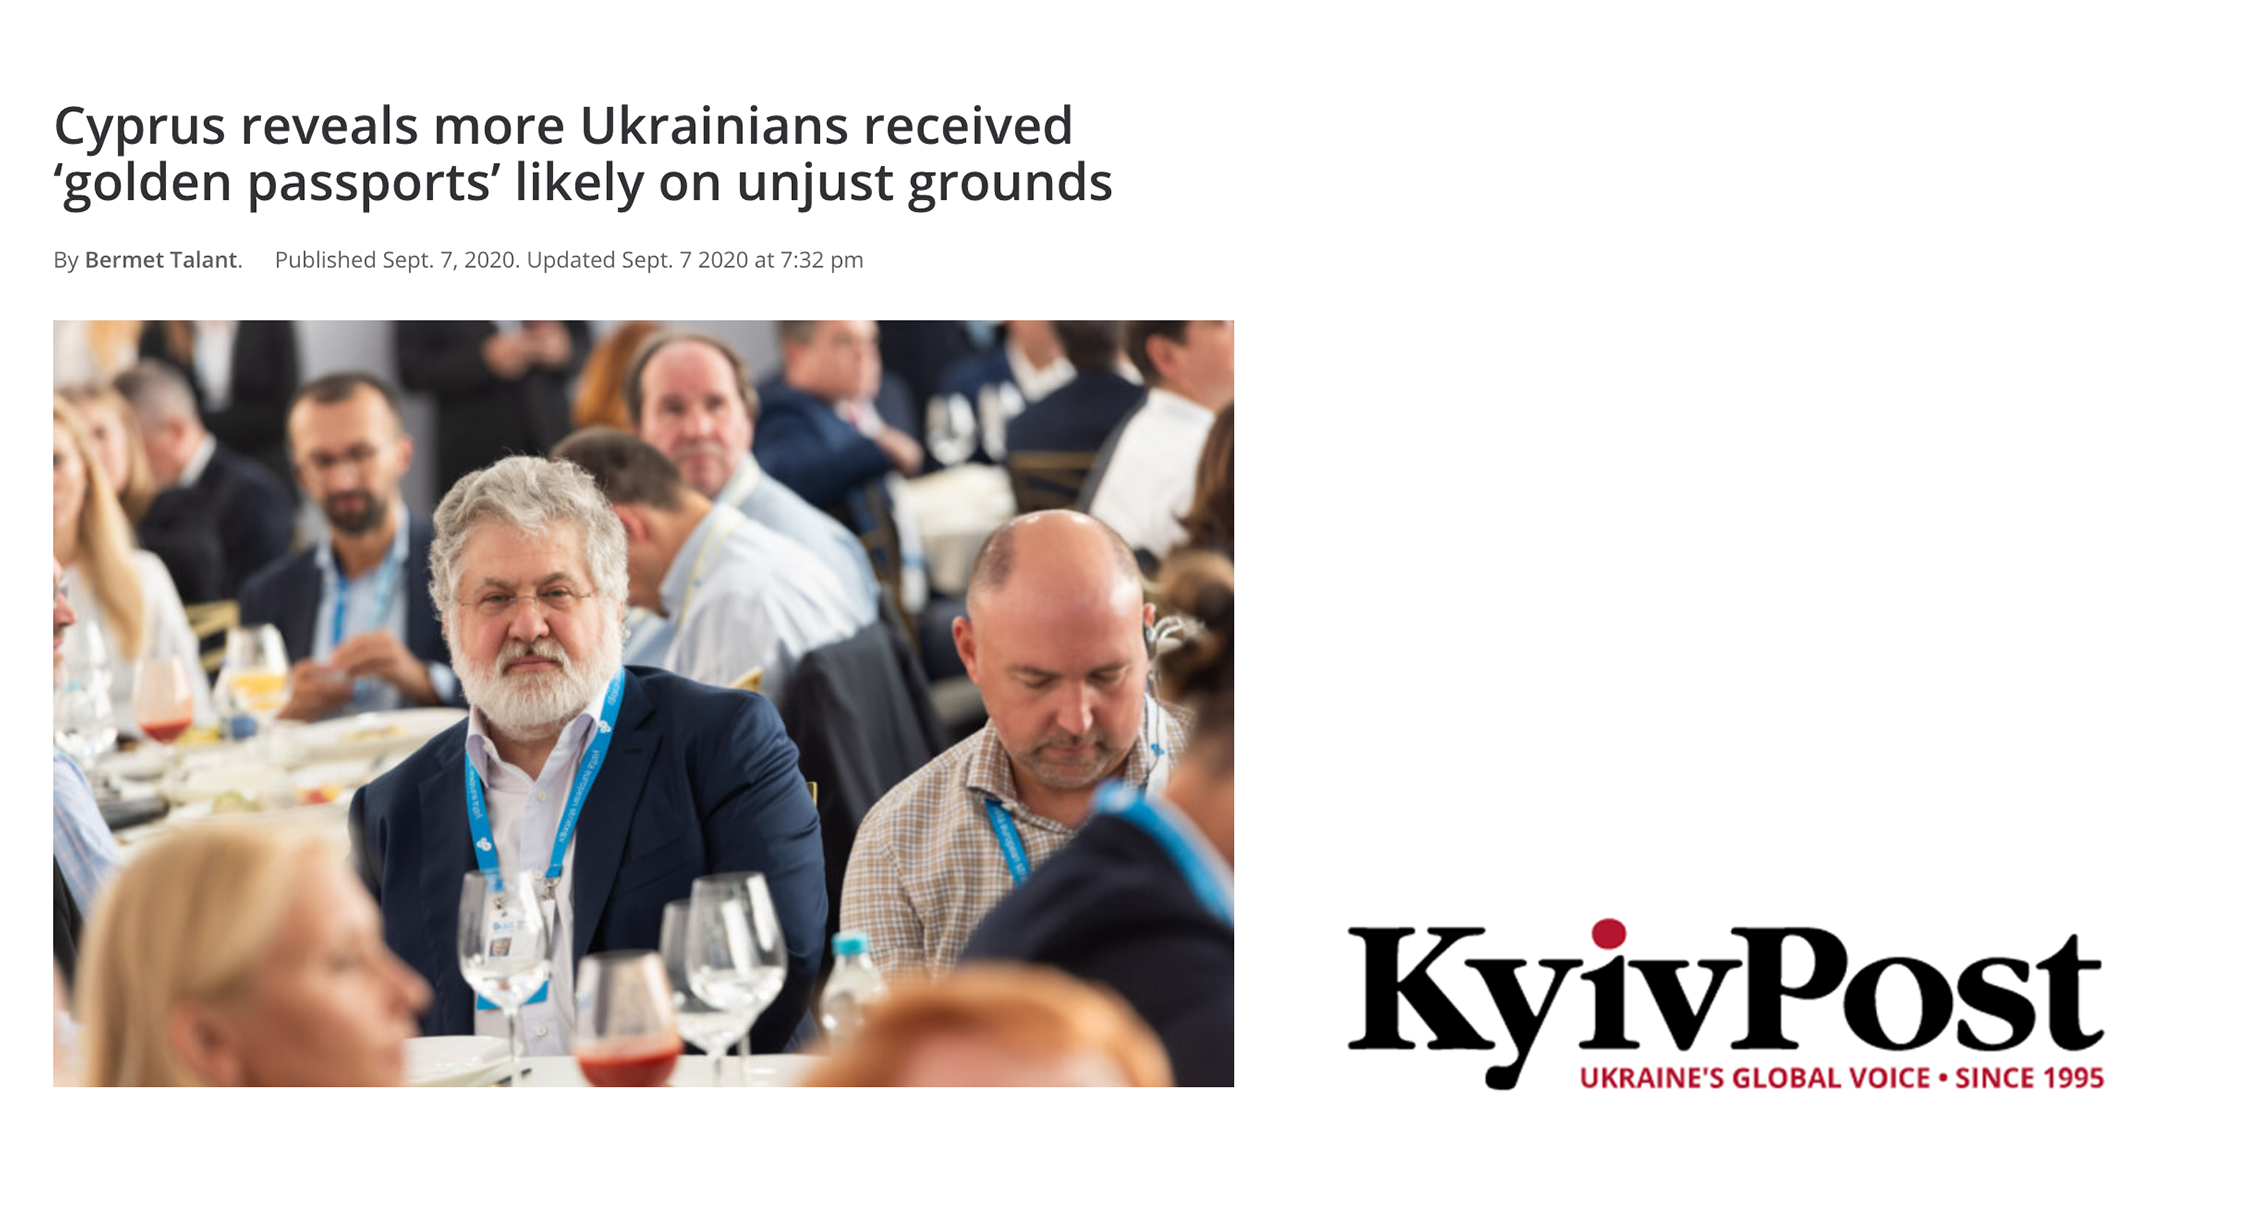 Kyiv Post: Cyprus reveals more Ukrainians received 'golden passports' likely on unjust grounds